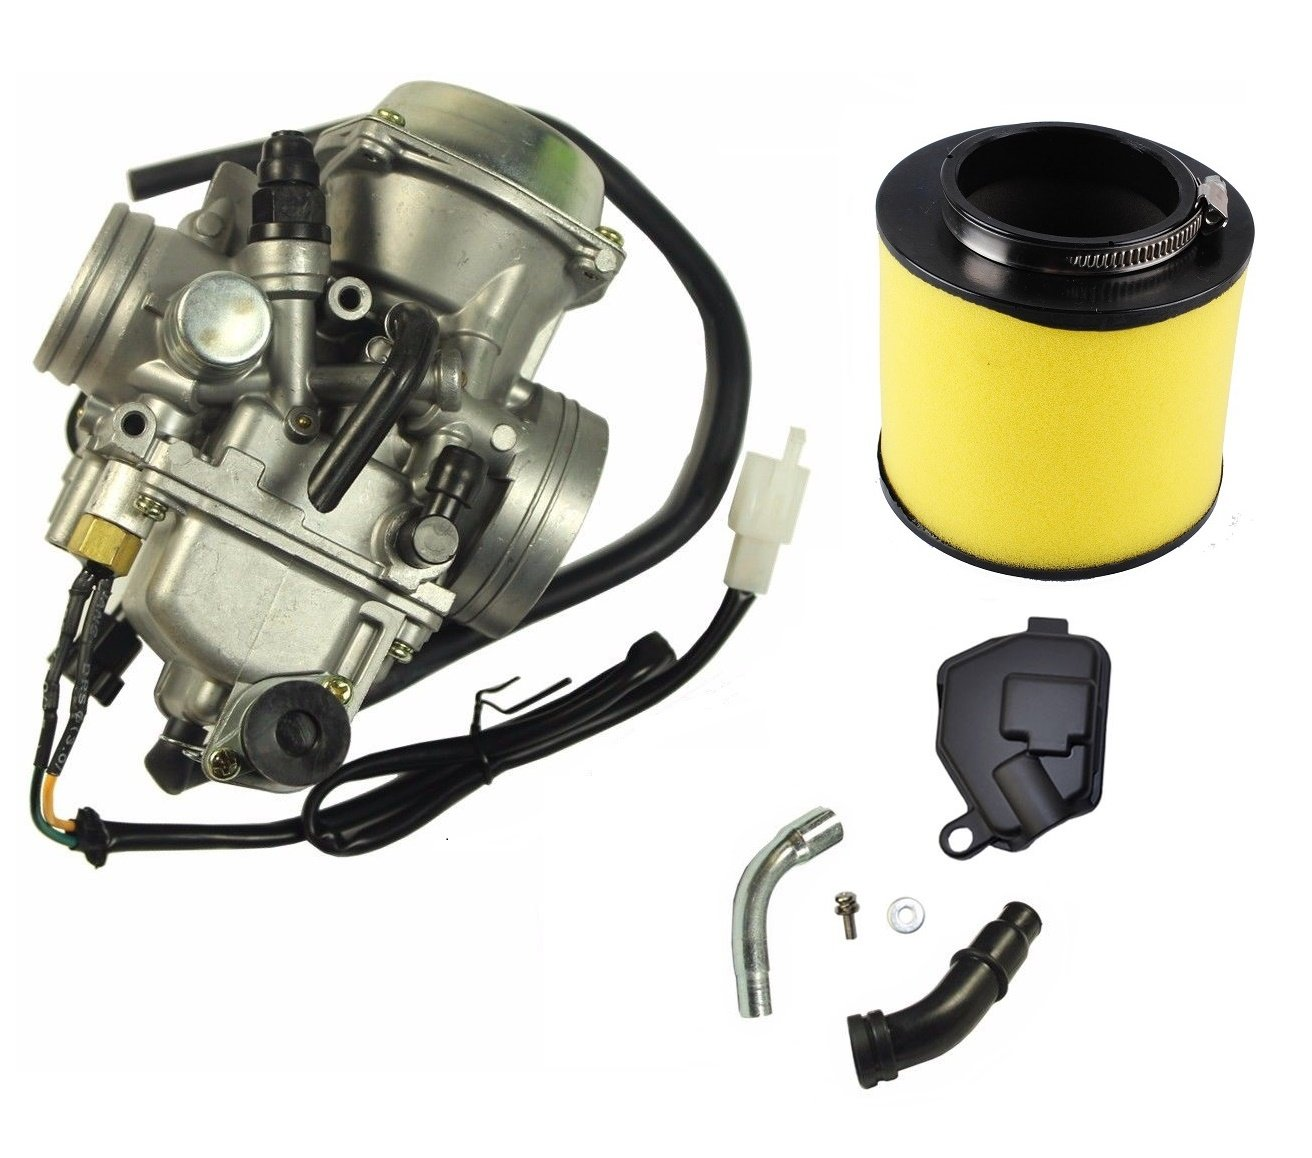 Carburetor And Air Filter for HONDA 350 TRX350 Rancher 350ES 350FE 350FMTE 350TM CARB 2000-2006